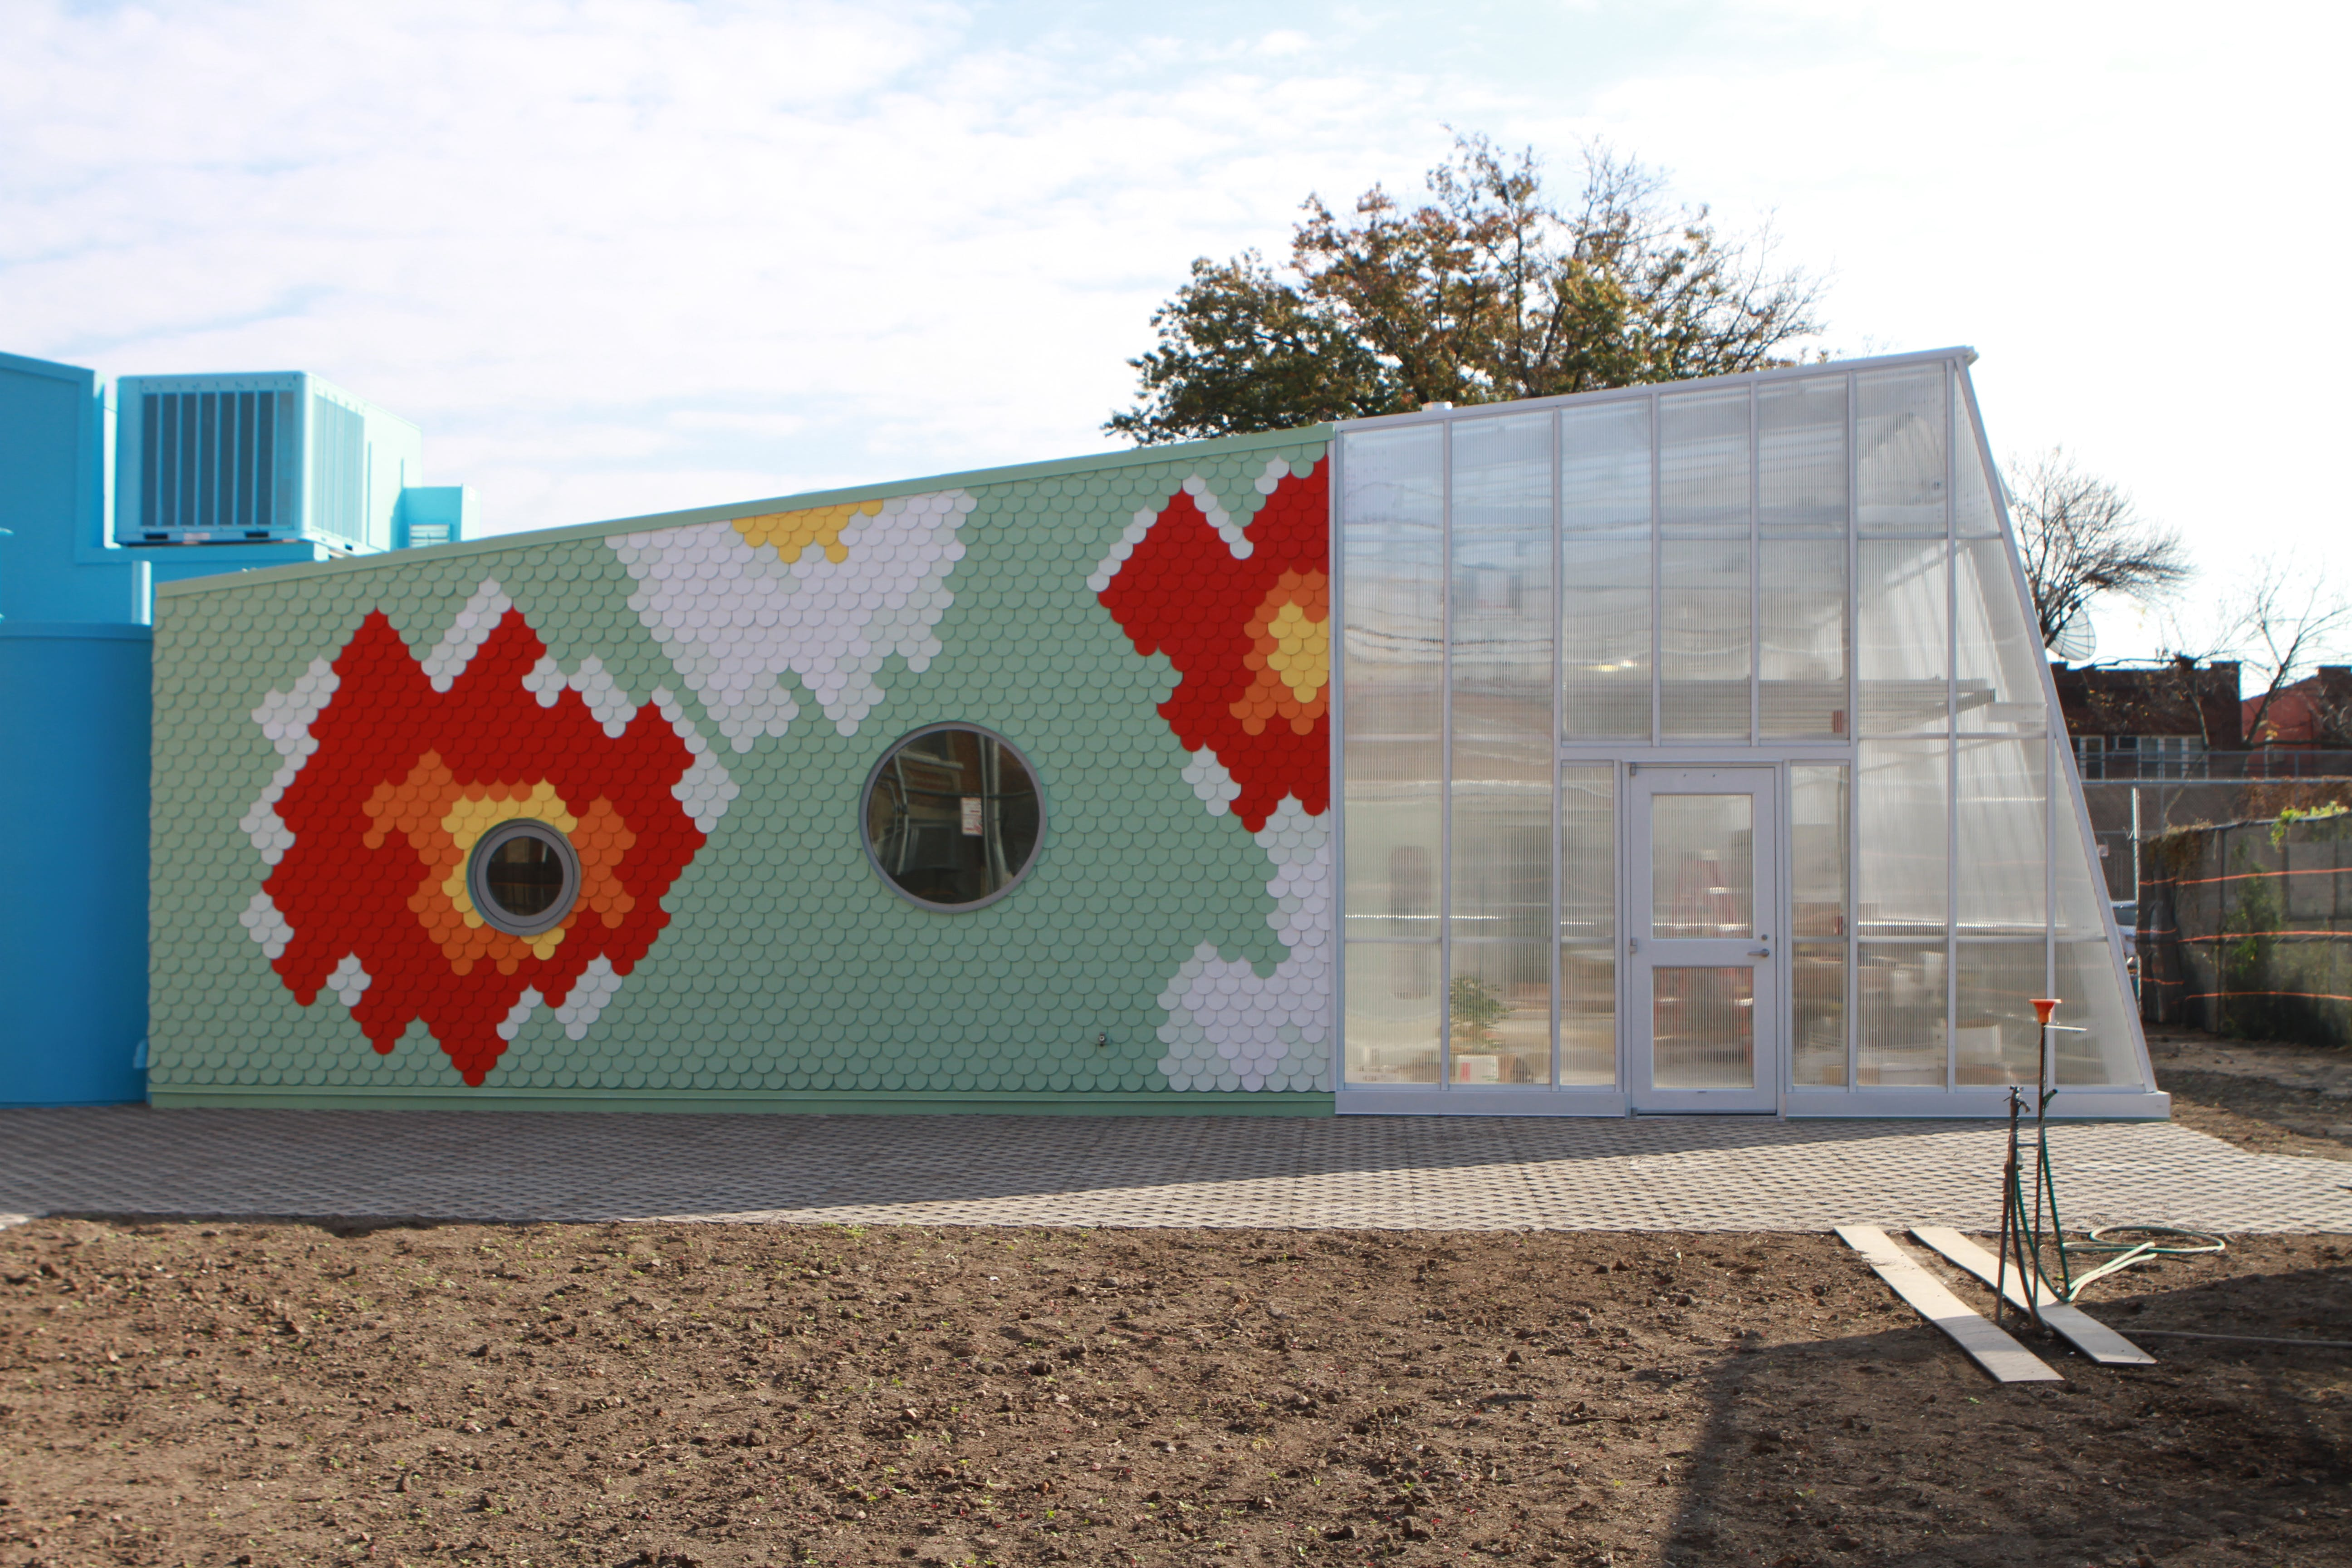 The Edible Schoolyard Greenhouse at PS 216 in Brooklyn, NY - Cross Country Greenhouses - sold by BC Greenhouse Builders Ltd.